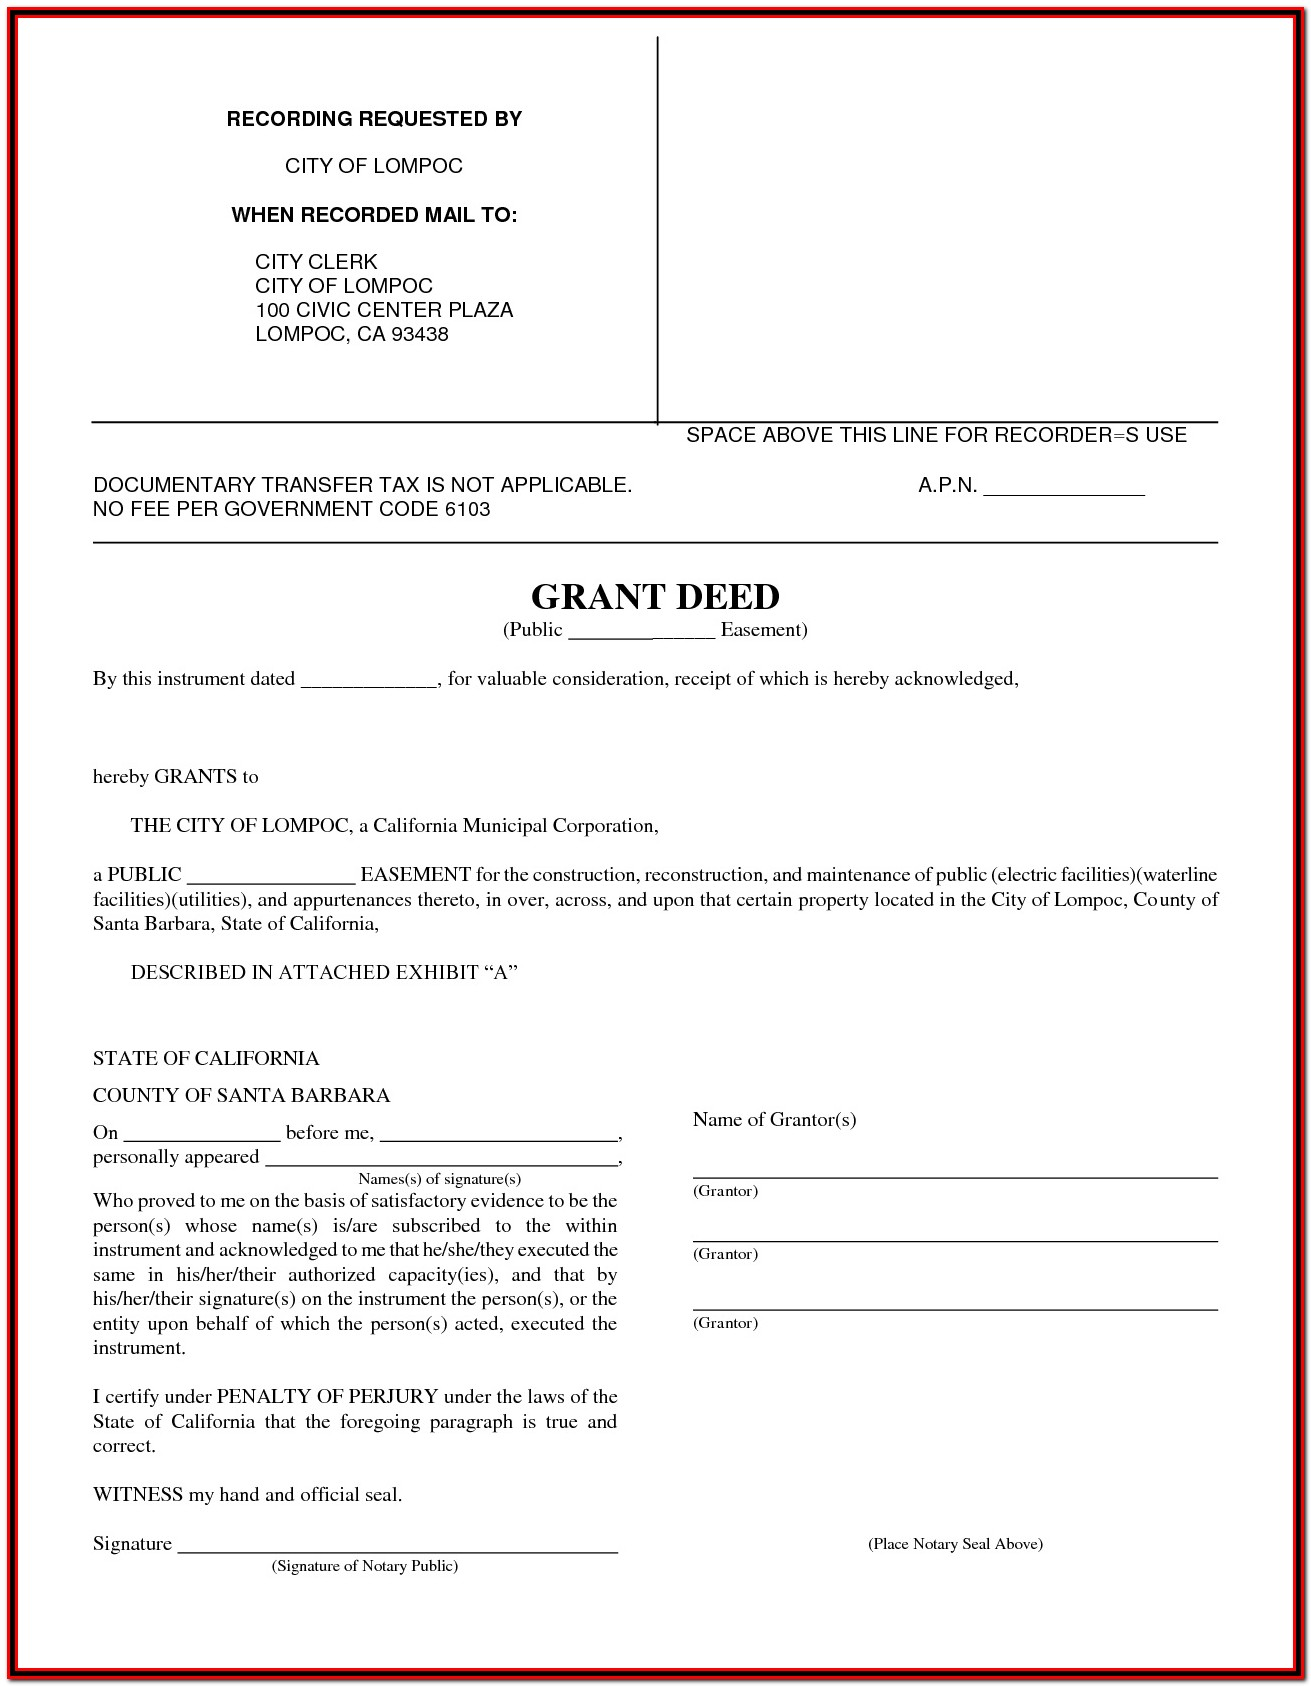 Grant Deed Form Orange County